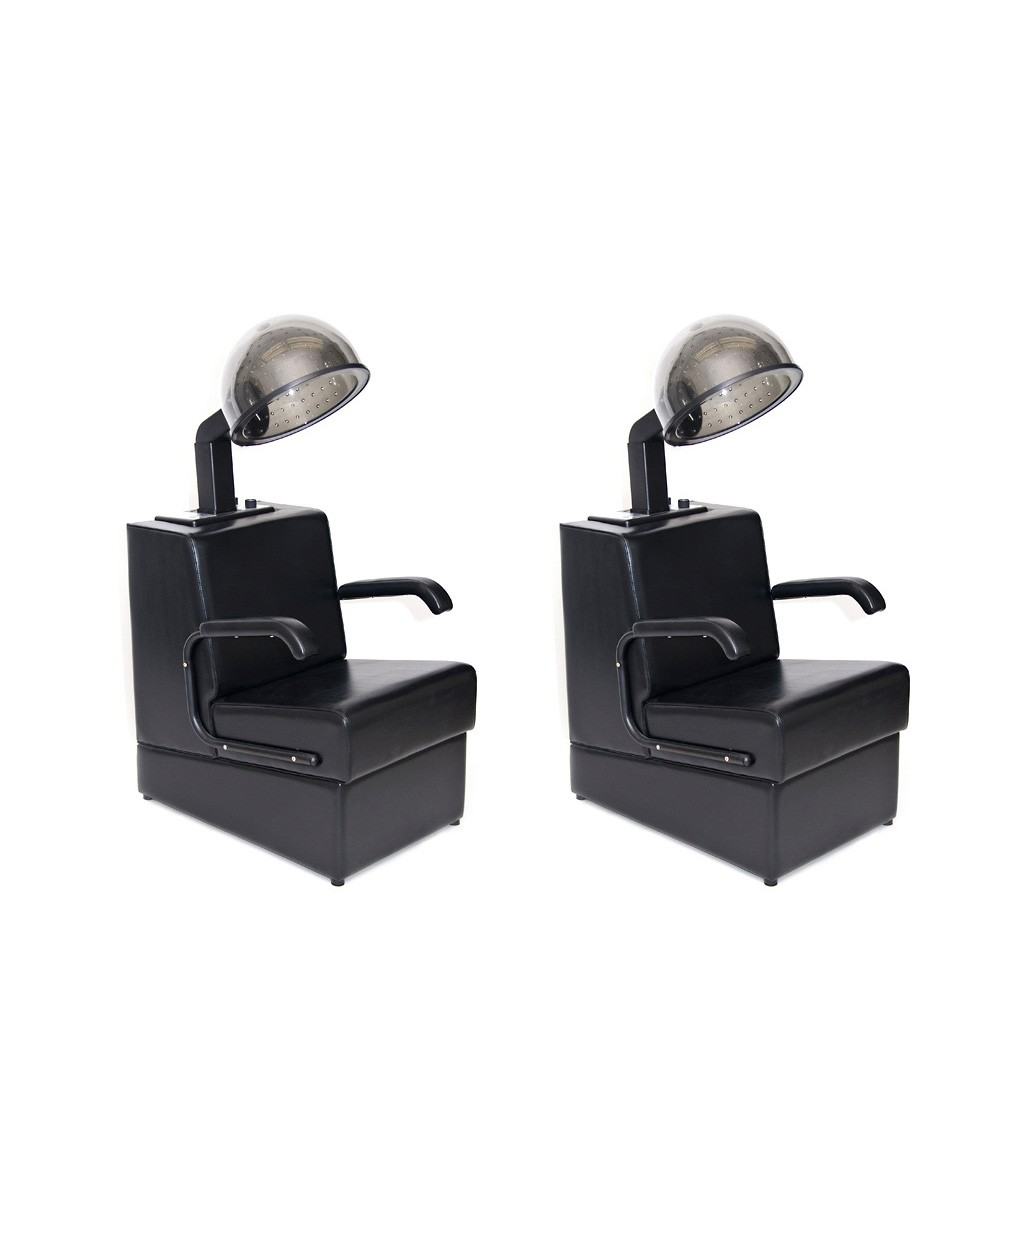 Set of 2 kate dryer chair combos for Buy rite salon